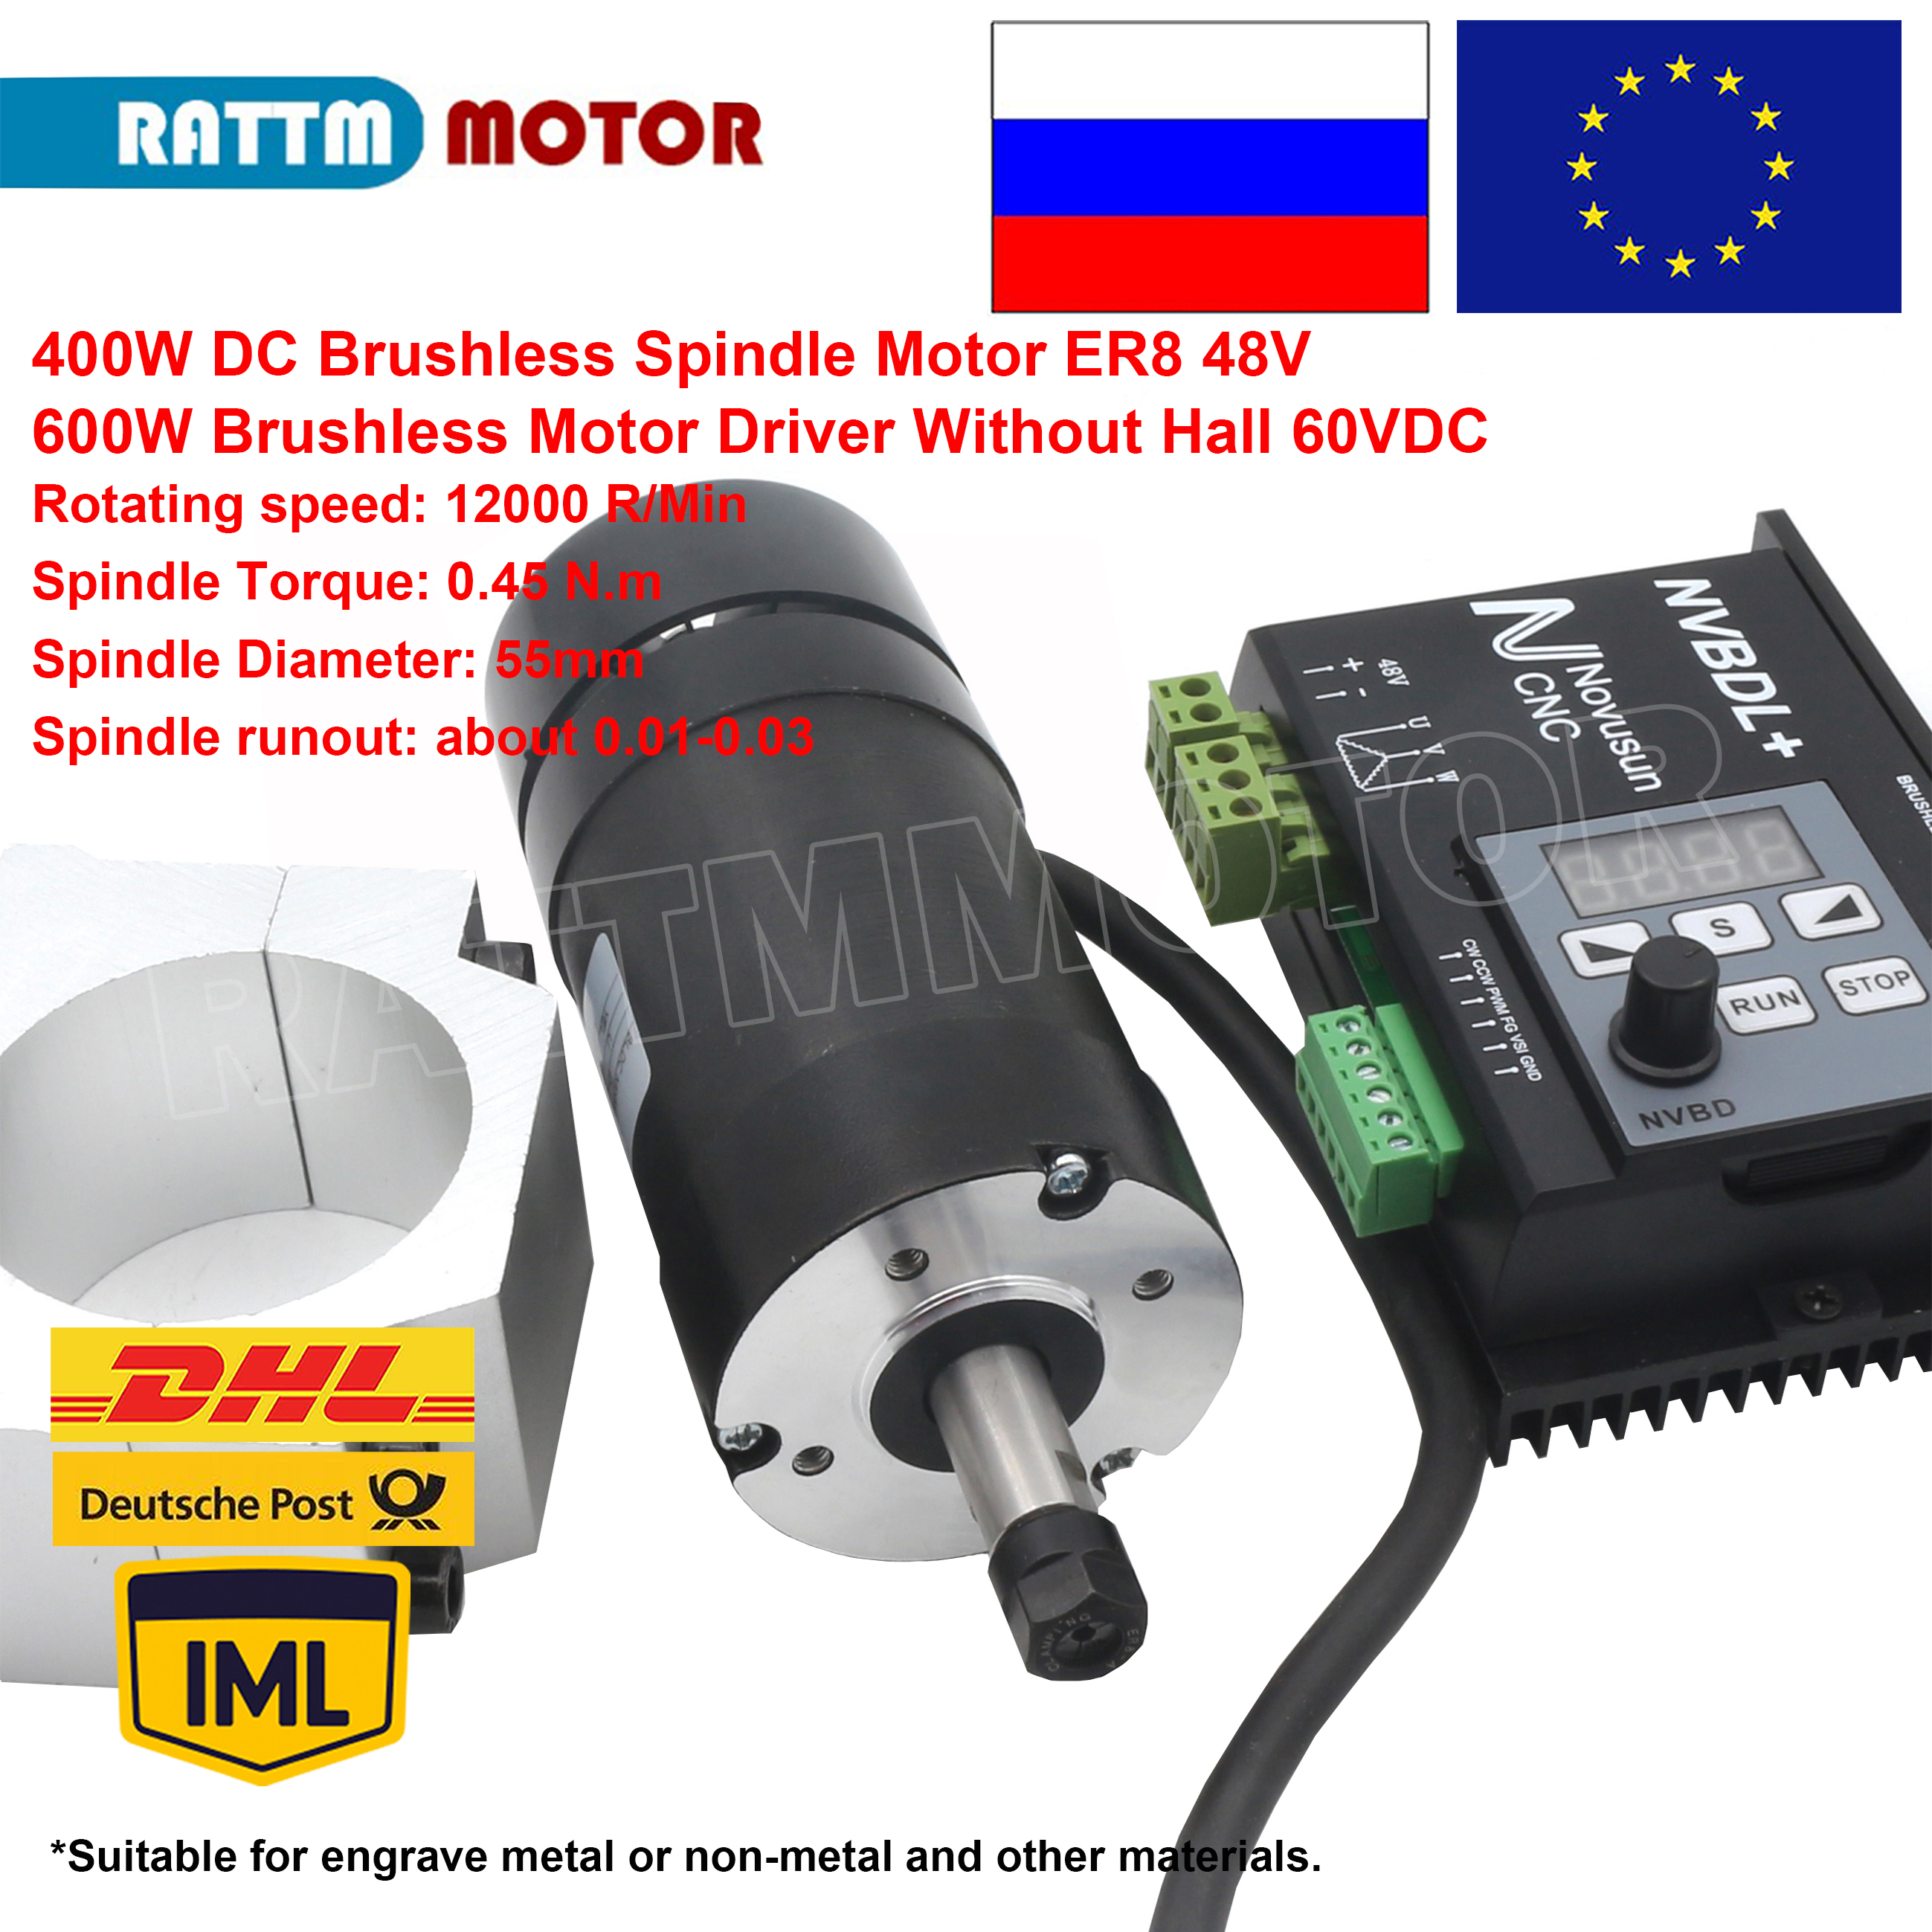 400W 48VDC Motor Air cooled Spindle Brushless ER8 600W 60VDC Brushless Motor Driver Without Hall for